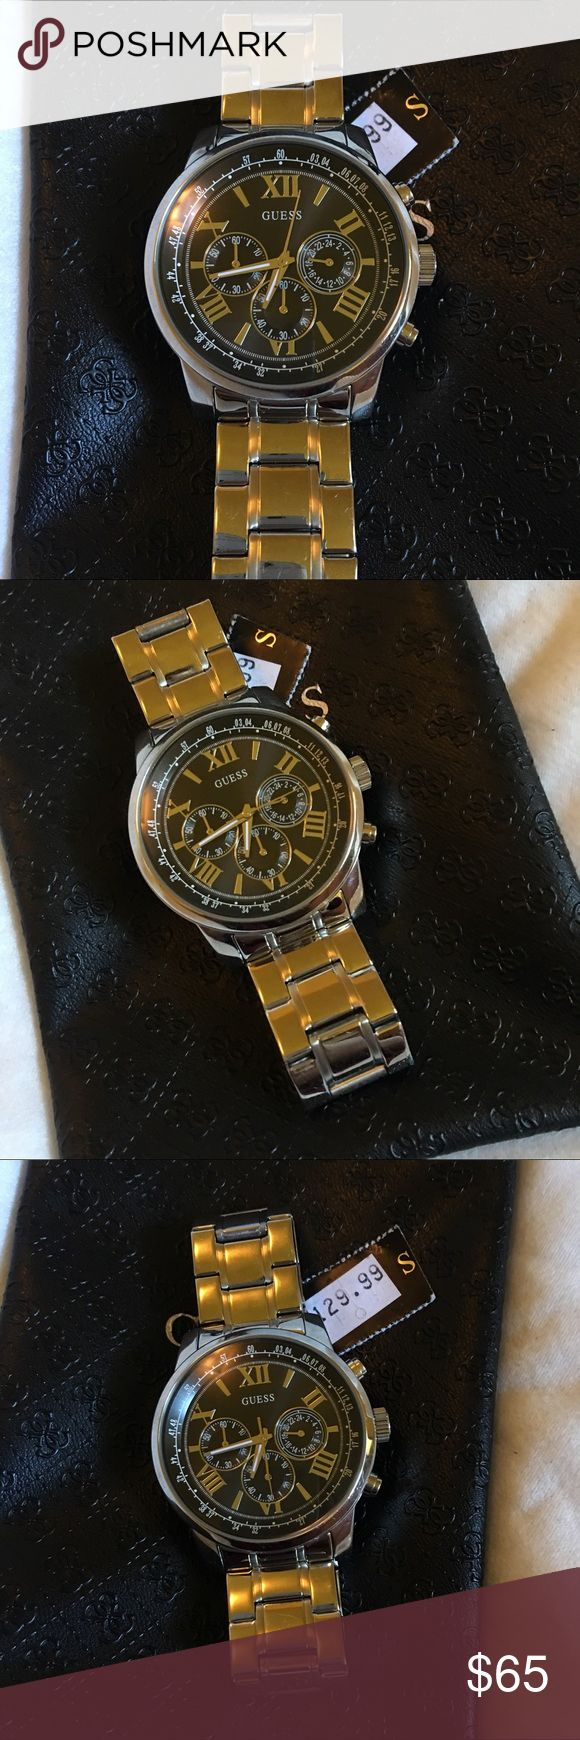 Men Guess Watch Silver and black watch. Water resistant new with tags comes in pouch Guess Accessories Watches